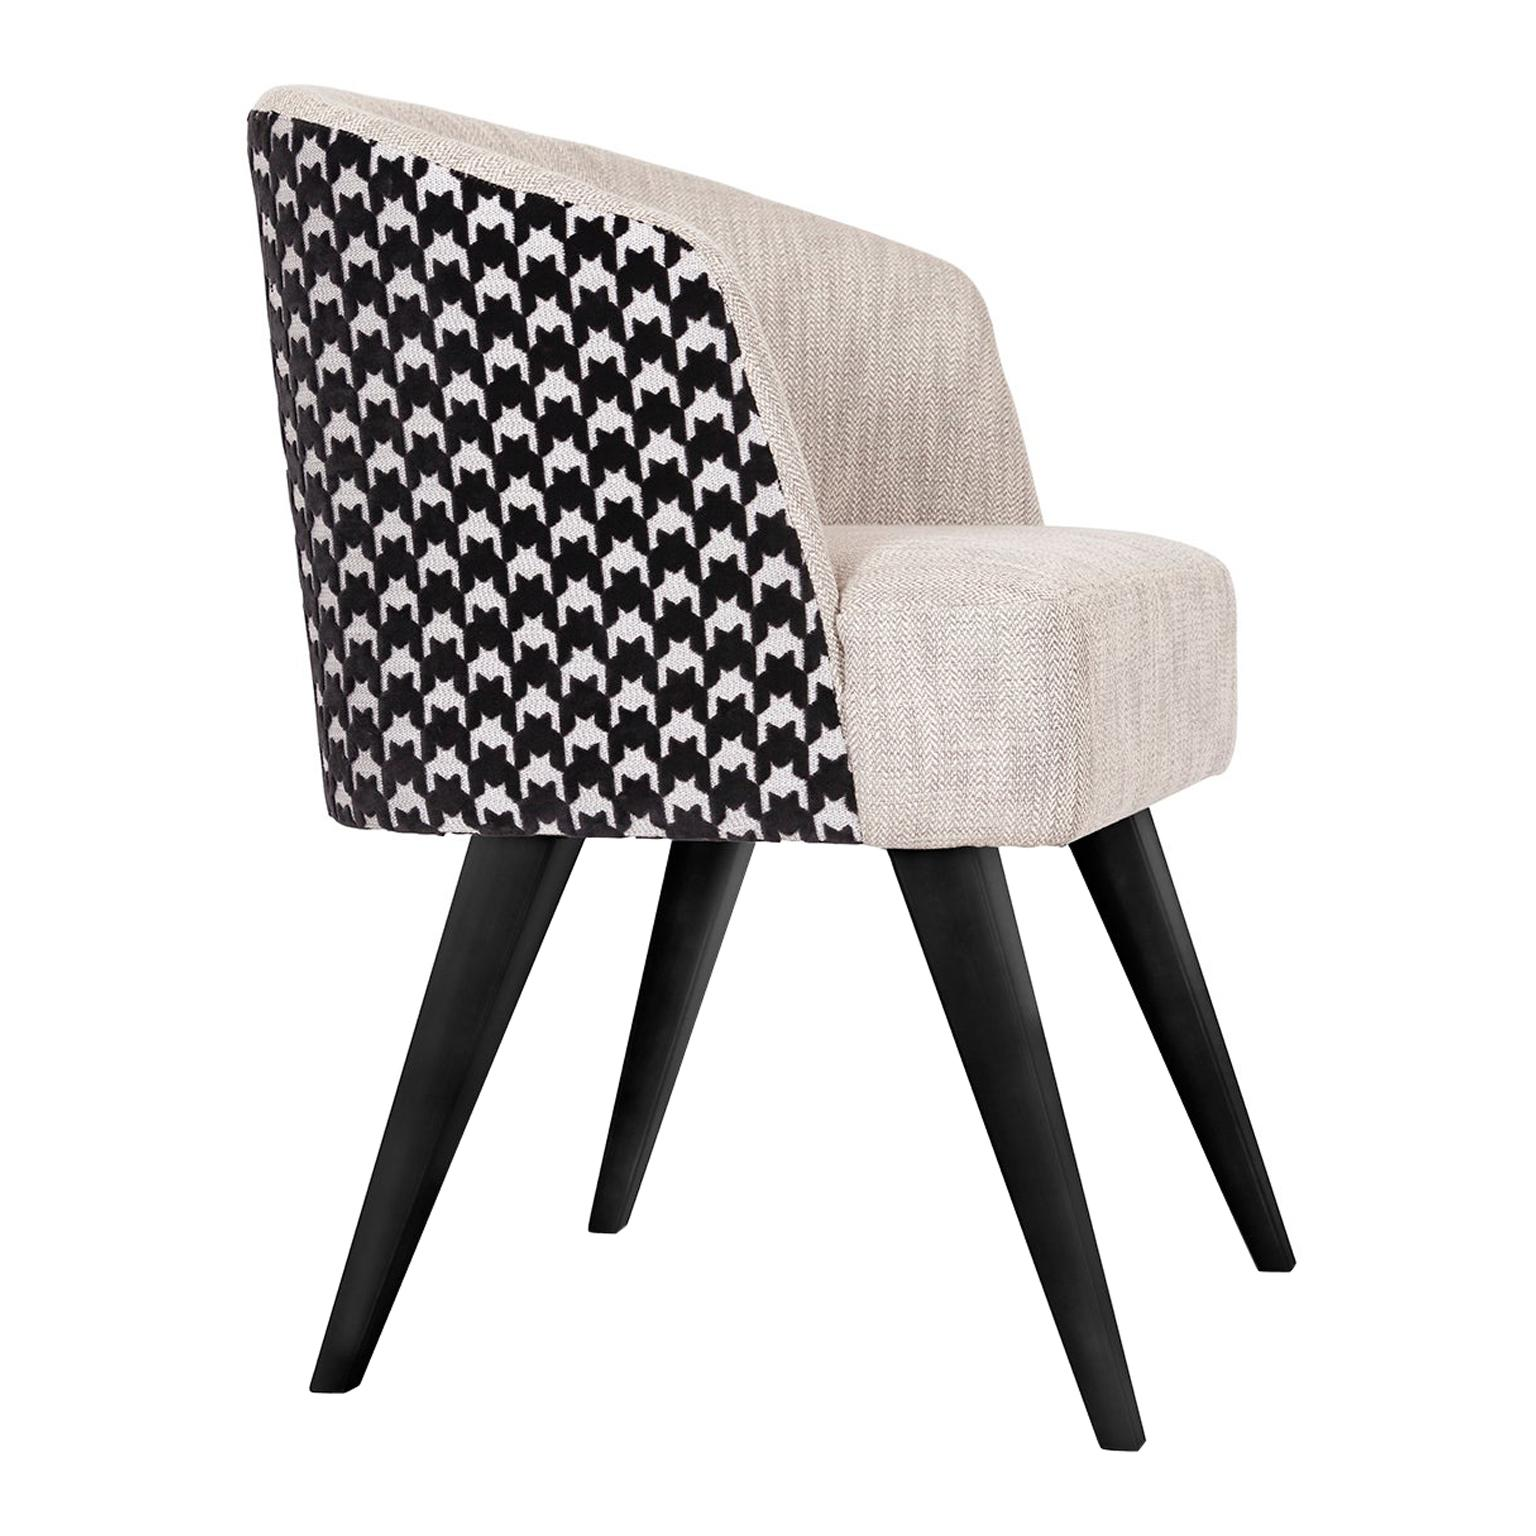 Eleanor Chair with Armrests Wood Black Lacquered Textured Fabric Jacquard Velvet